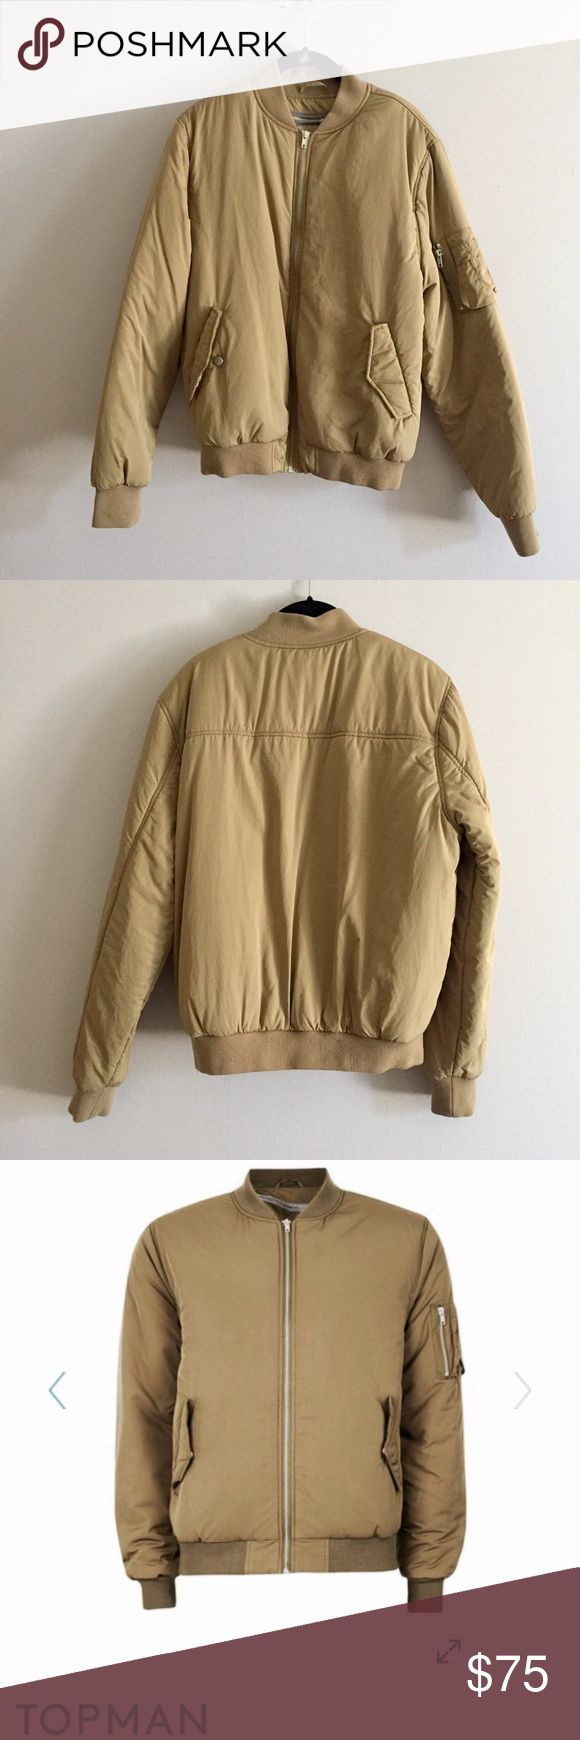 TOPMAN Padded Bomber Jacket In Olive Beige TOPMAN Medium Bomber Jacket, Very Nice Material, This Has A Second Layer Inside For Extra Warmth But Can Be Taken Off By Zipper. Great Condition, Only Flaw Is That Tare By The Right Pocket. Retails $110 At Nordstrom. Can Fit A Woman's Small Or Medium! Topman Jackets & Coats Puffers